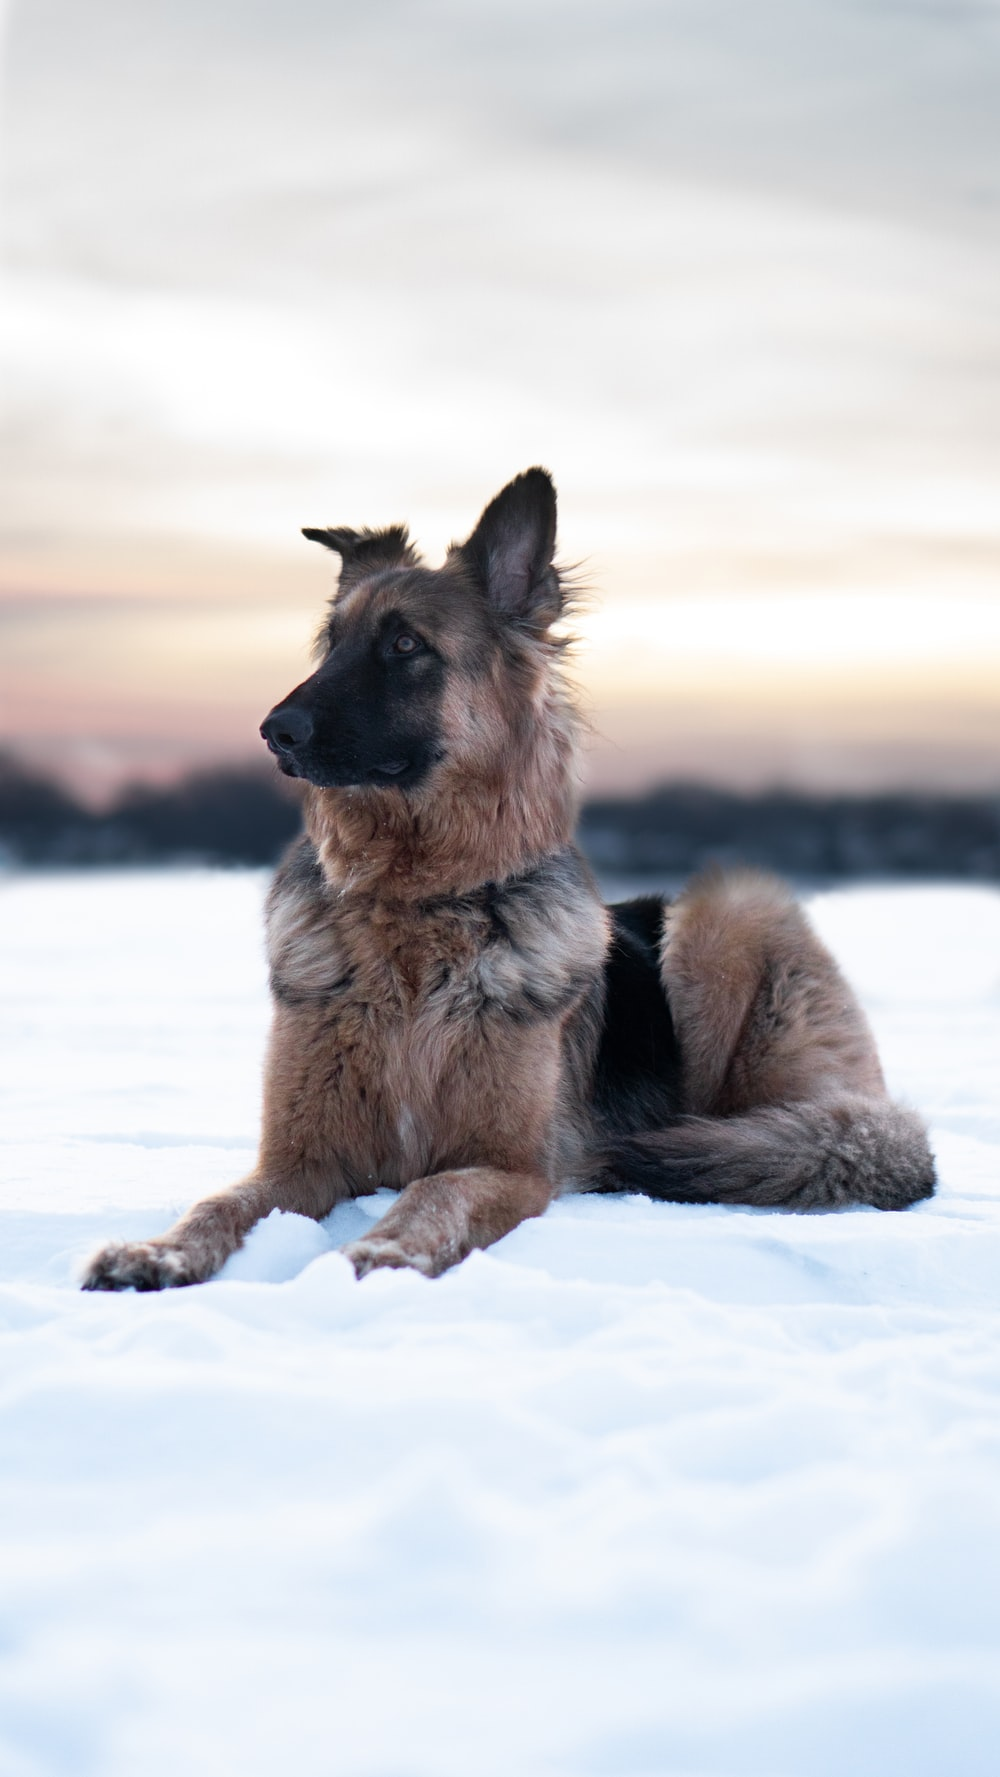 dog lying on snow covered ground